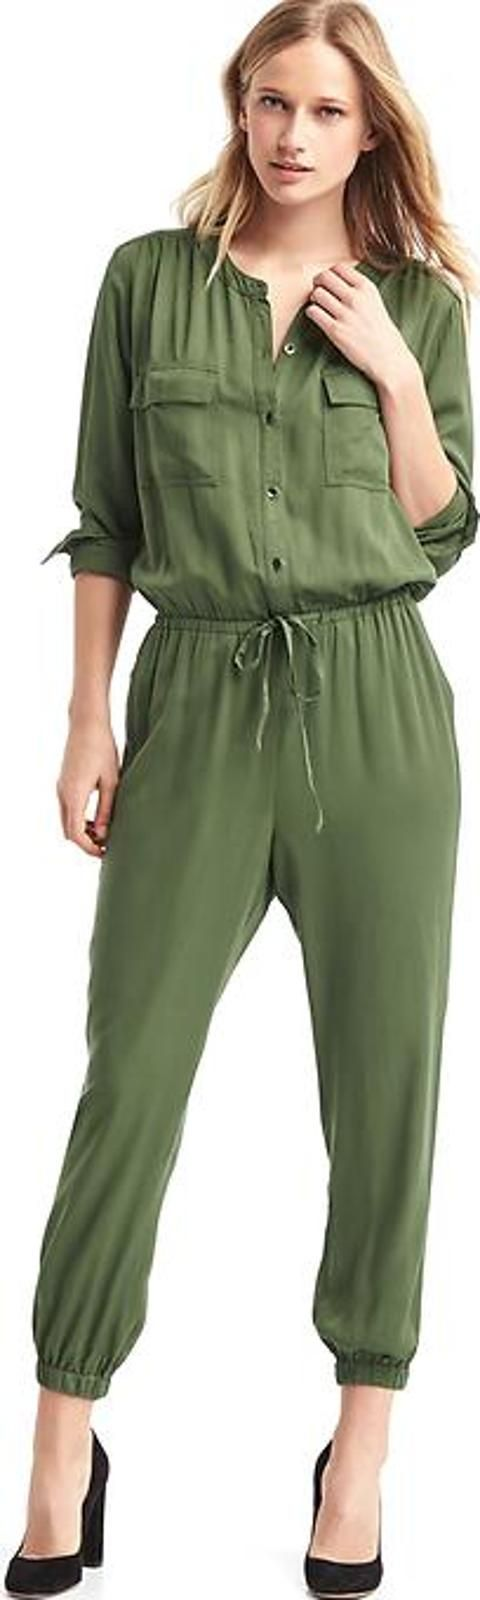 ap Modal Utility Drawstring Jumpsuit Jungle green. Gap Womens Jumpsuits Playsuits Soft modal weave. Long sleeves with button cuffs. Round neckline. Button front. Button flap patch pockets at chest. Front slant pockets. Elasticized waist with drawstring ties.#Gap #Green #Playsuit #Women #fashion #obsessory #fashion #lifestyle #style #myobsession #ss17 #springsummer #summerfashion #womenfashion #style #luxury #luxuryfashion #lifestyle #trends #trendsetter